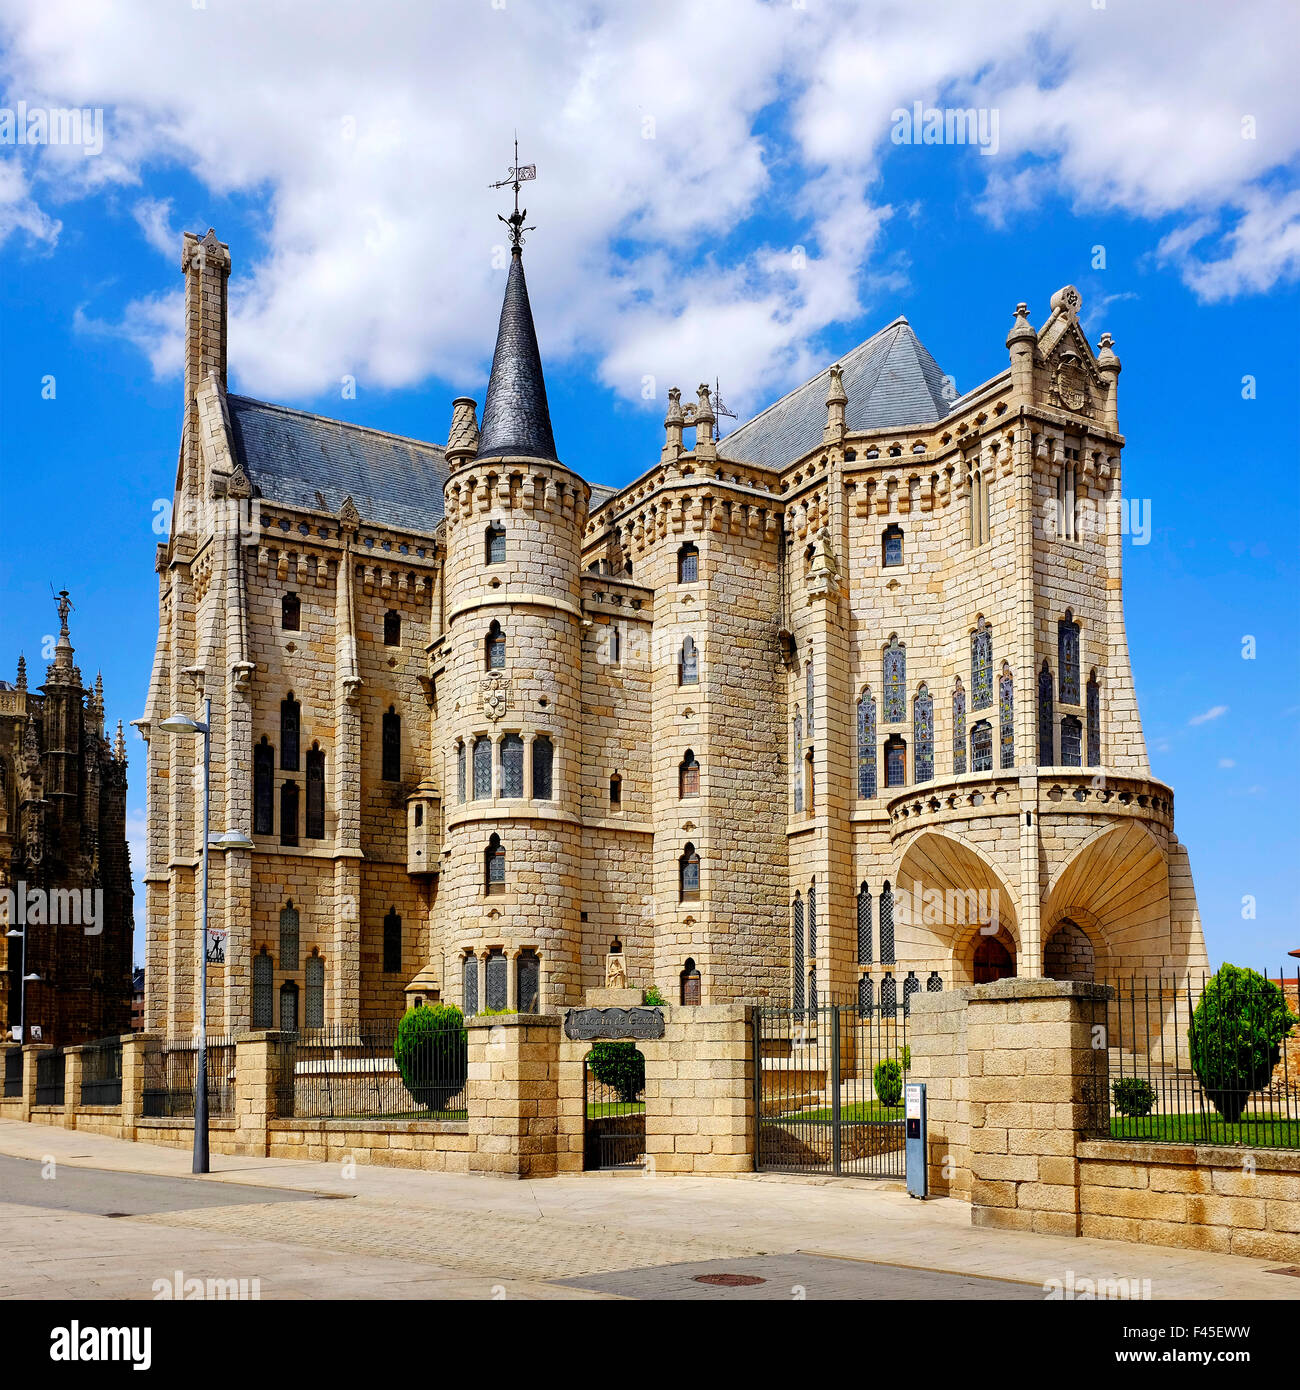 Episcopal Palace of Astorga designed by Antoni Gaudí, Castile and León, Spain - Stock Image